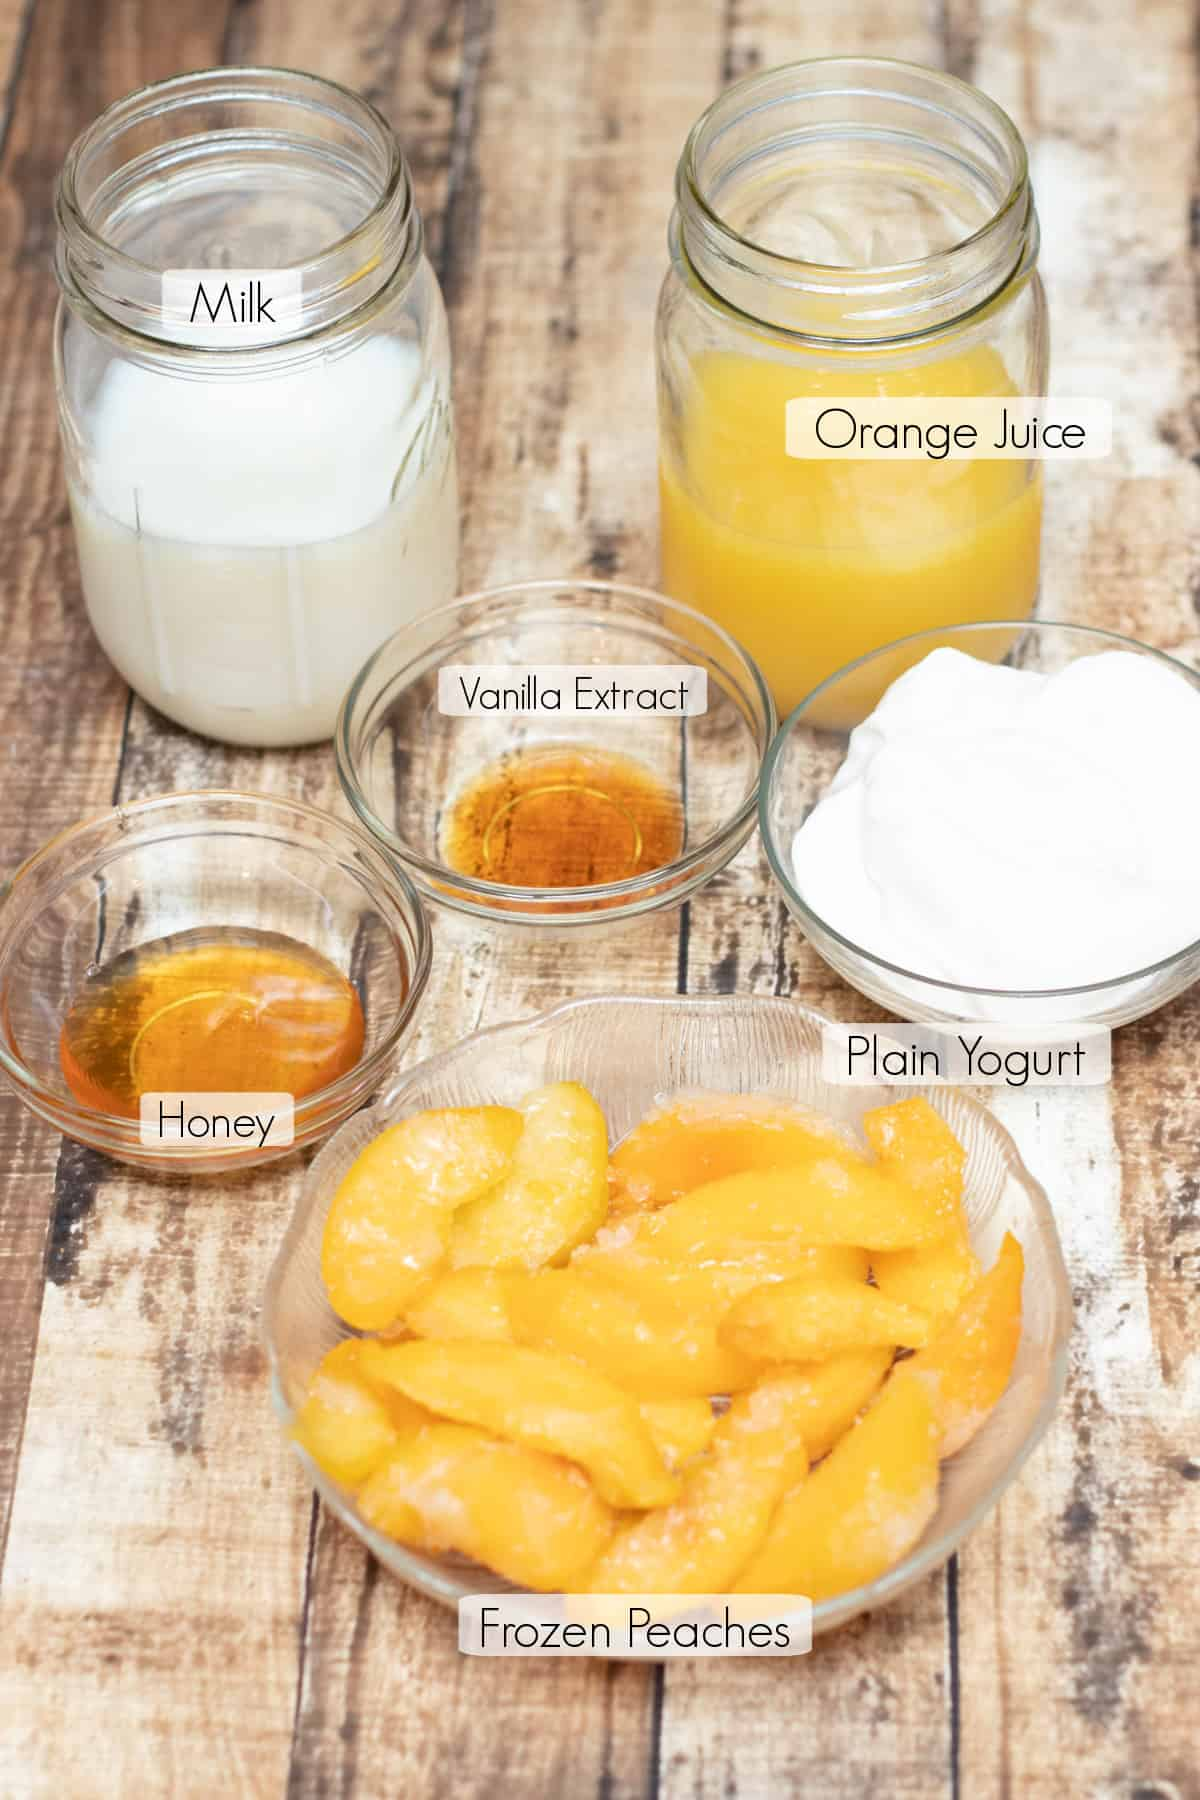 Labeled ingredients for making an orange peach smoothie.